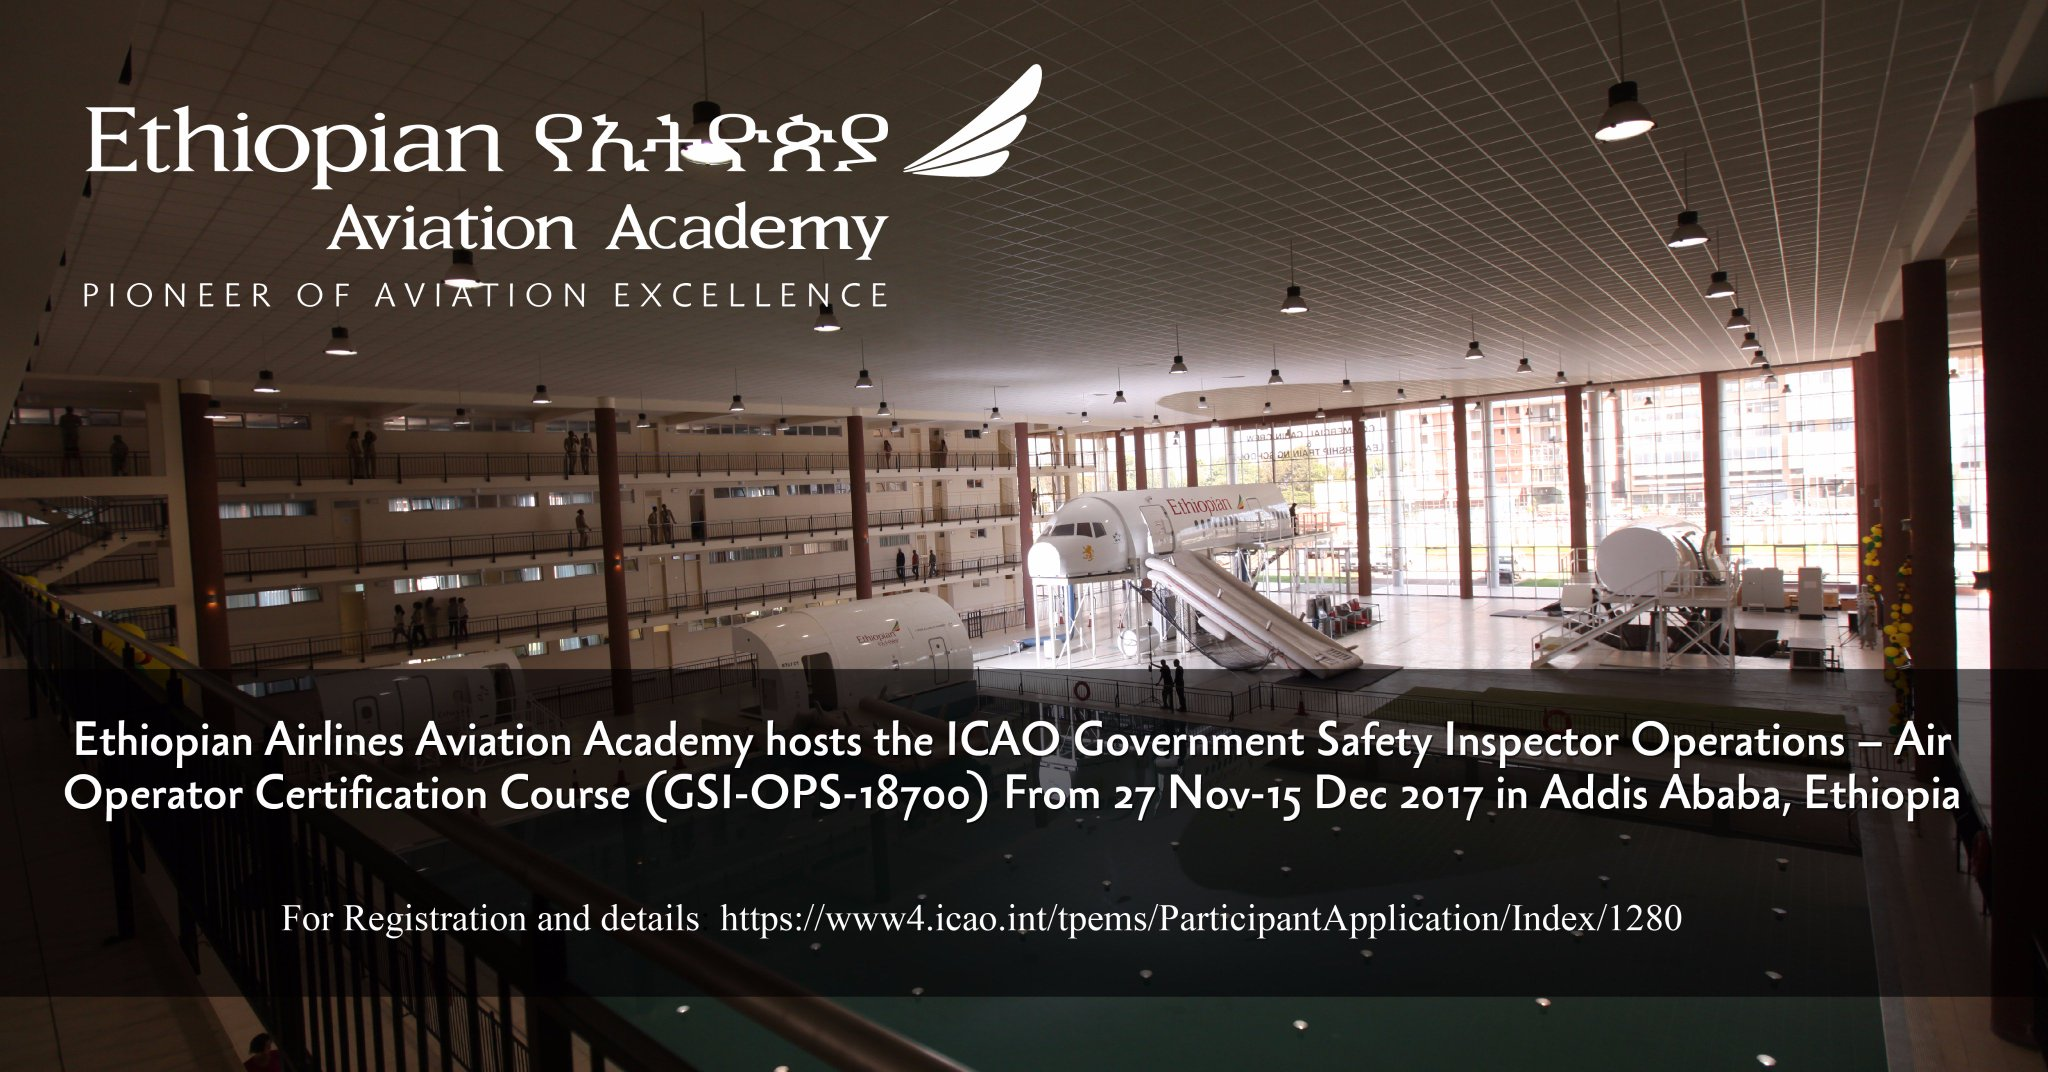 Ethiopian Airlines On Twitter Ethiopian Aviation Academy Hosts The Icao Government Safety Inspector Operations Air Operator Certification Course Gsi Ops 18700 From 27 Nov 15 Dec 2017 In Addis Ababa Ethiopia Follow The Link